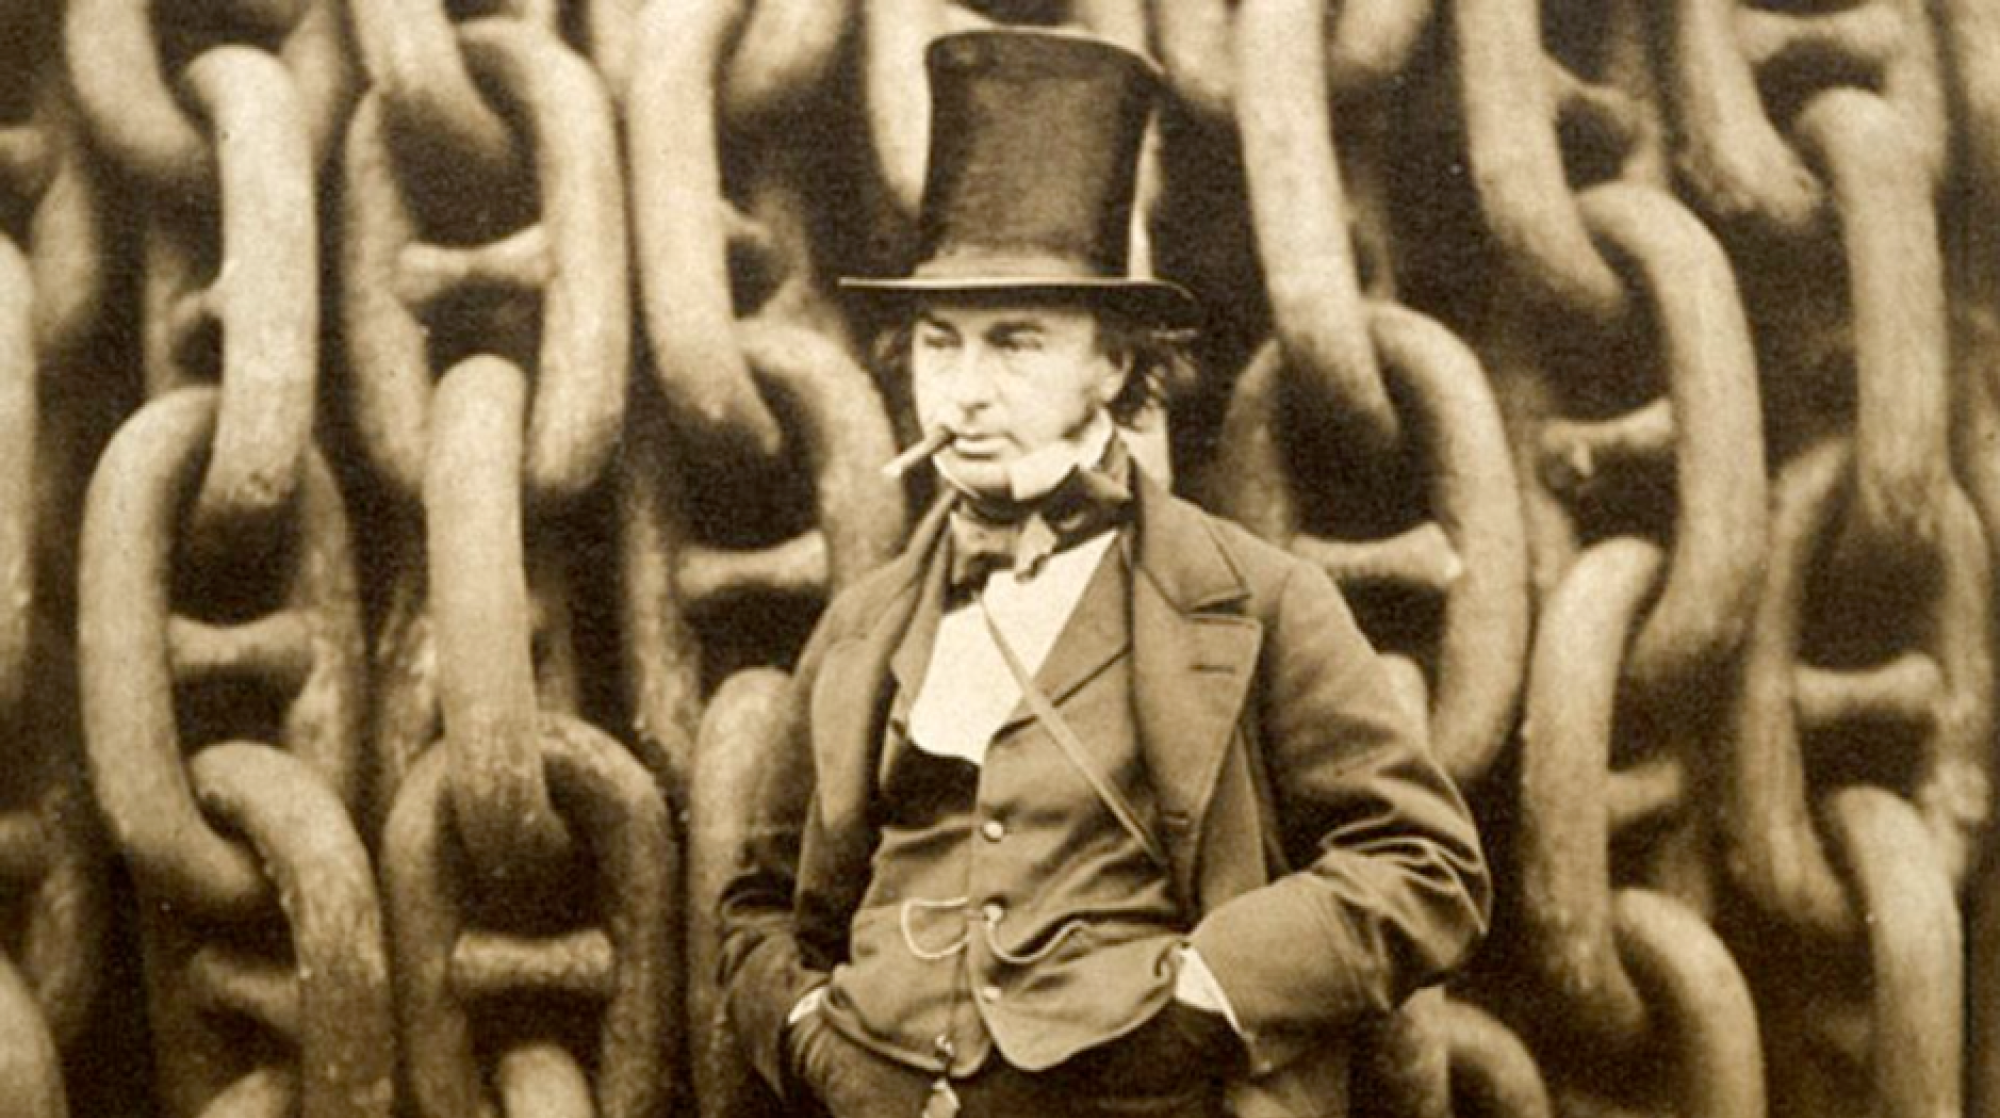 Isembard Kingdom Brunel